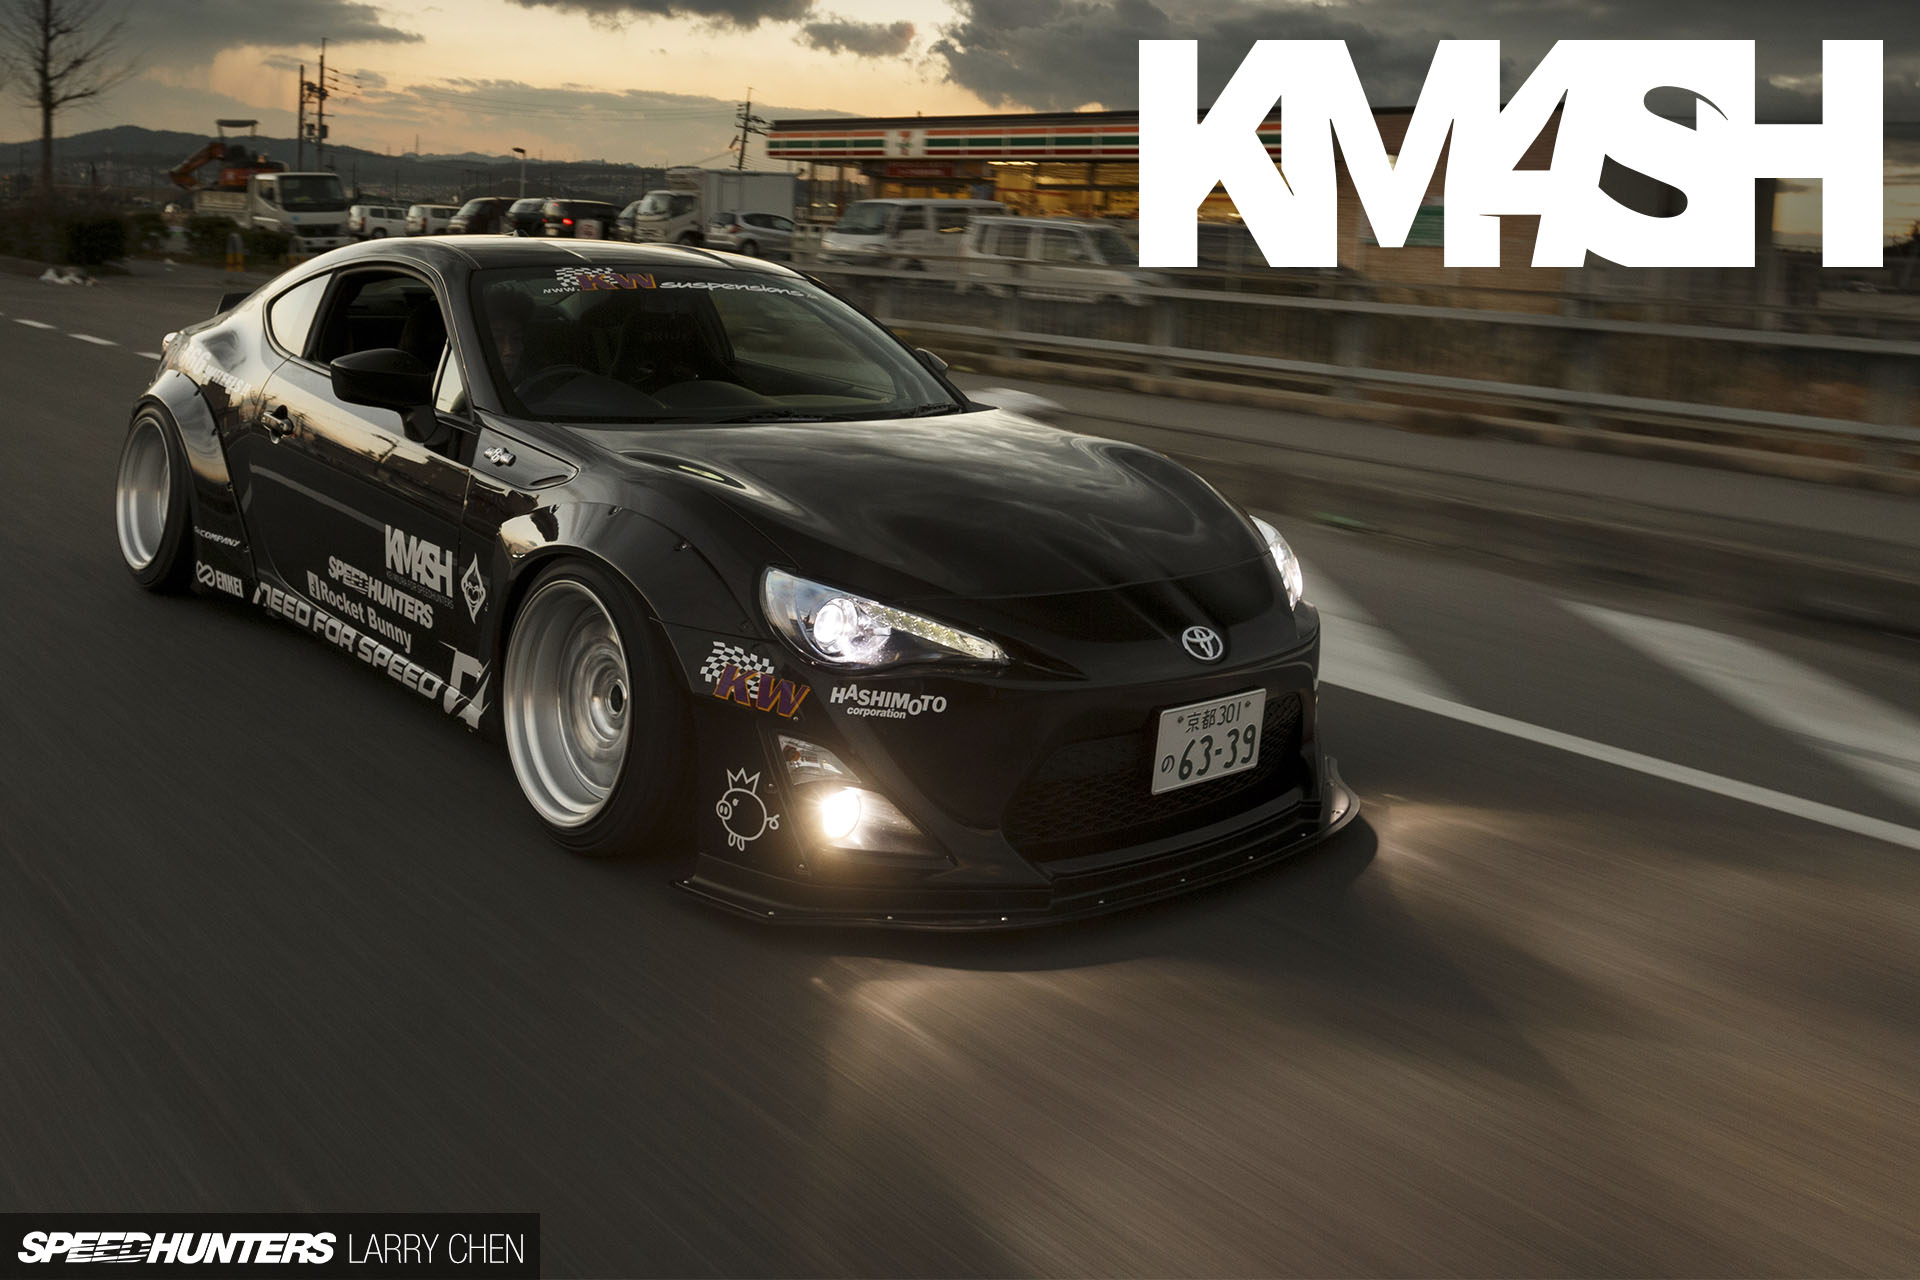 Widebody Drift Car Wallpaper The Km4sh Body Kit Your 86 Our Style Speedhunters